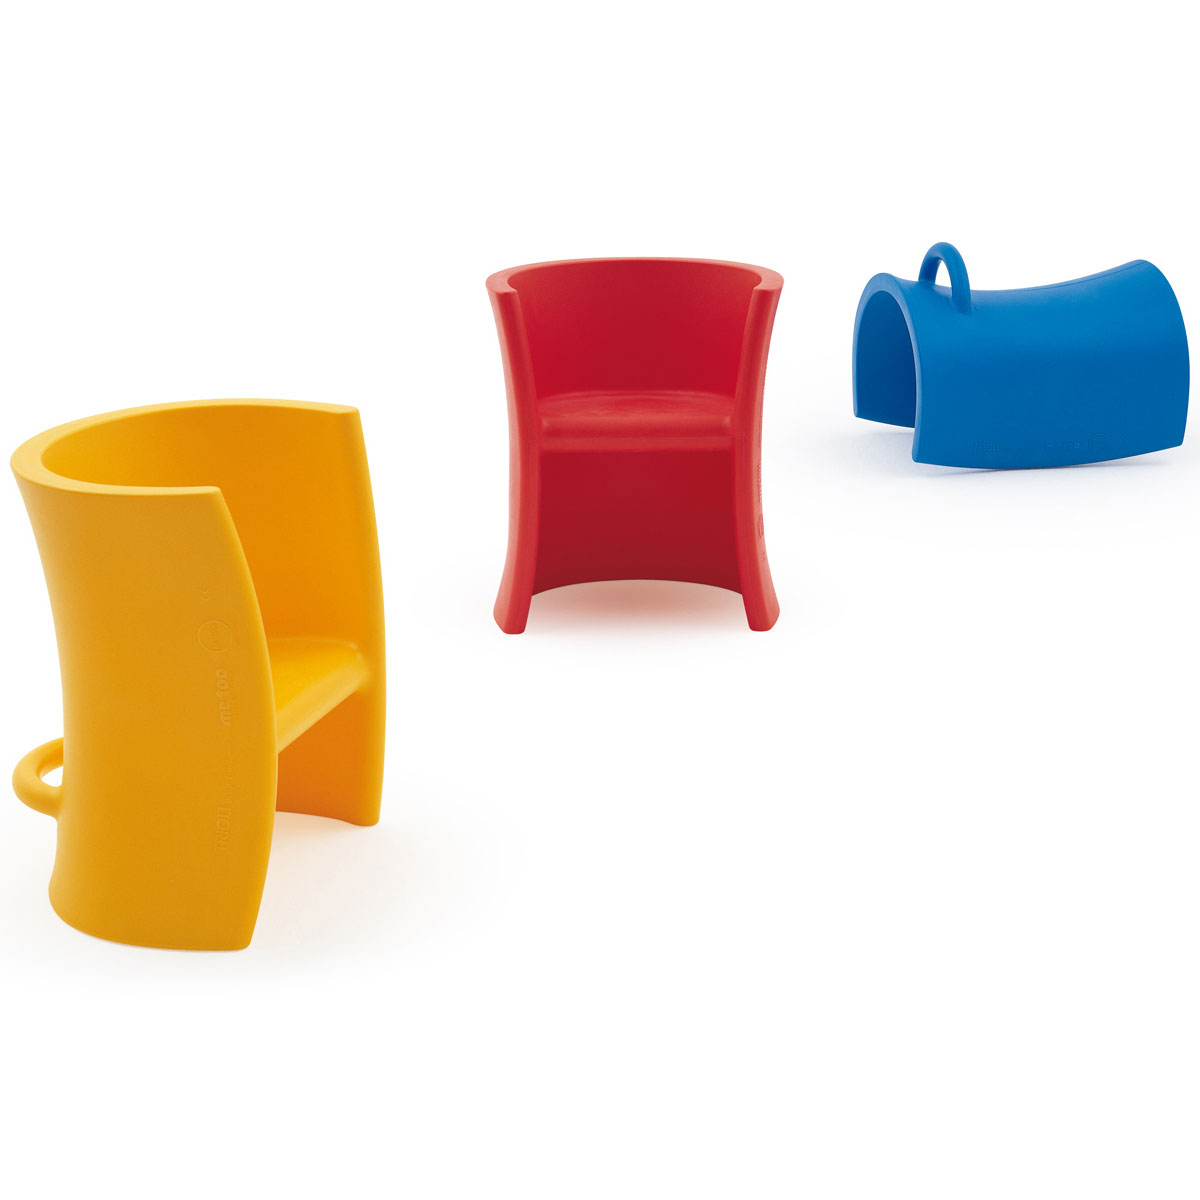 Delicieux Magis U2013 Trioli Childrens Chair